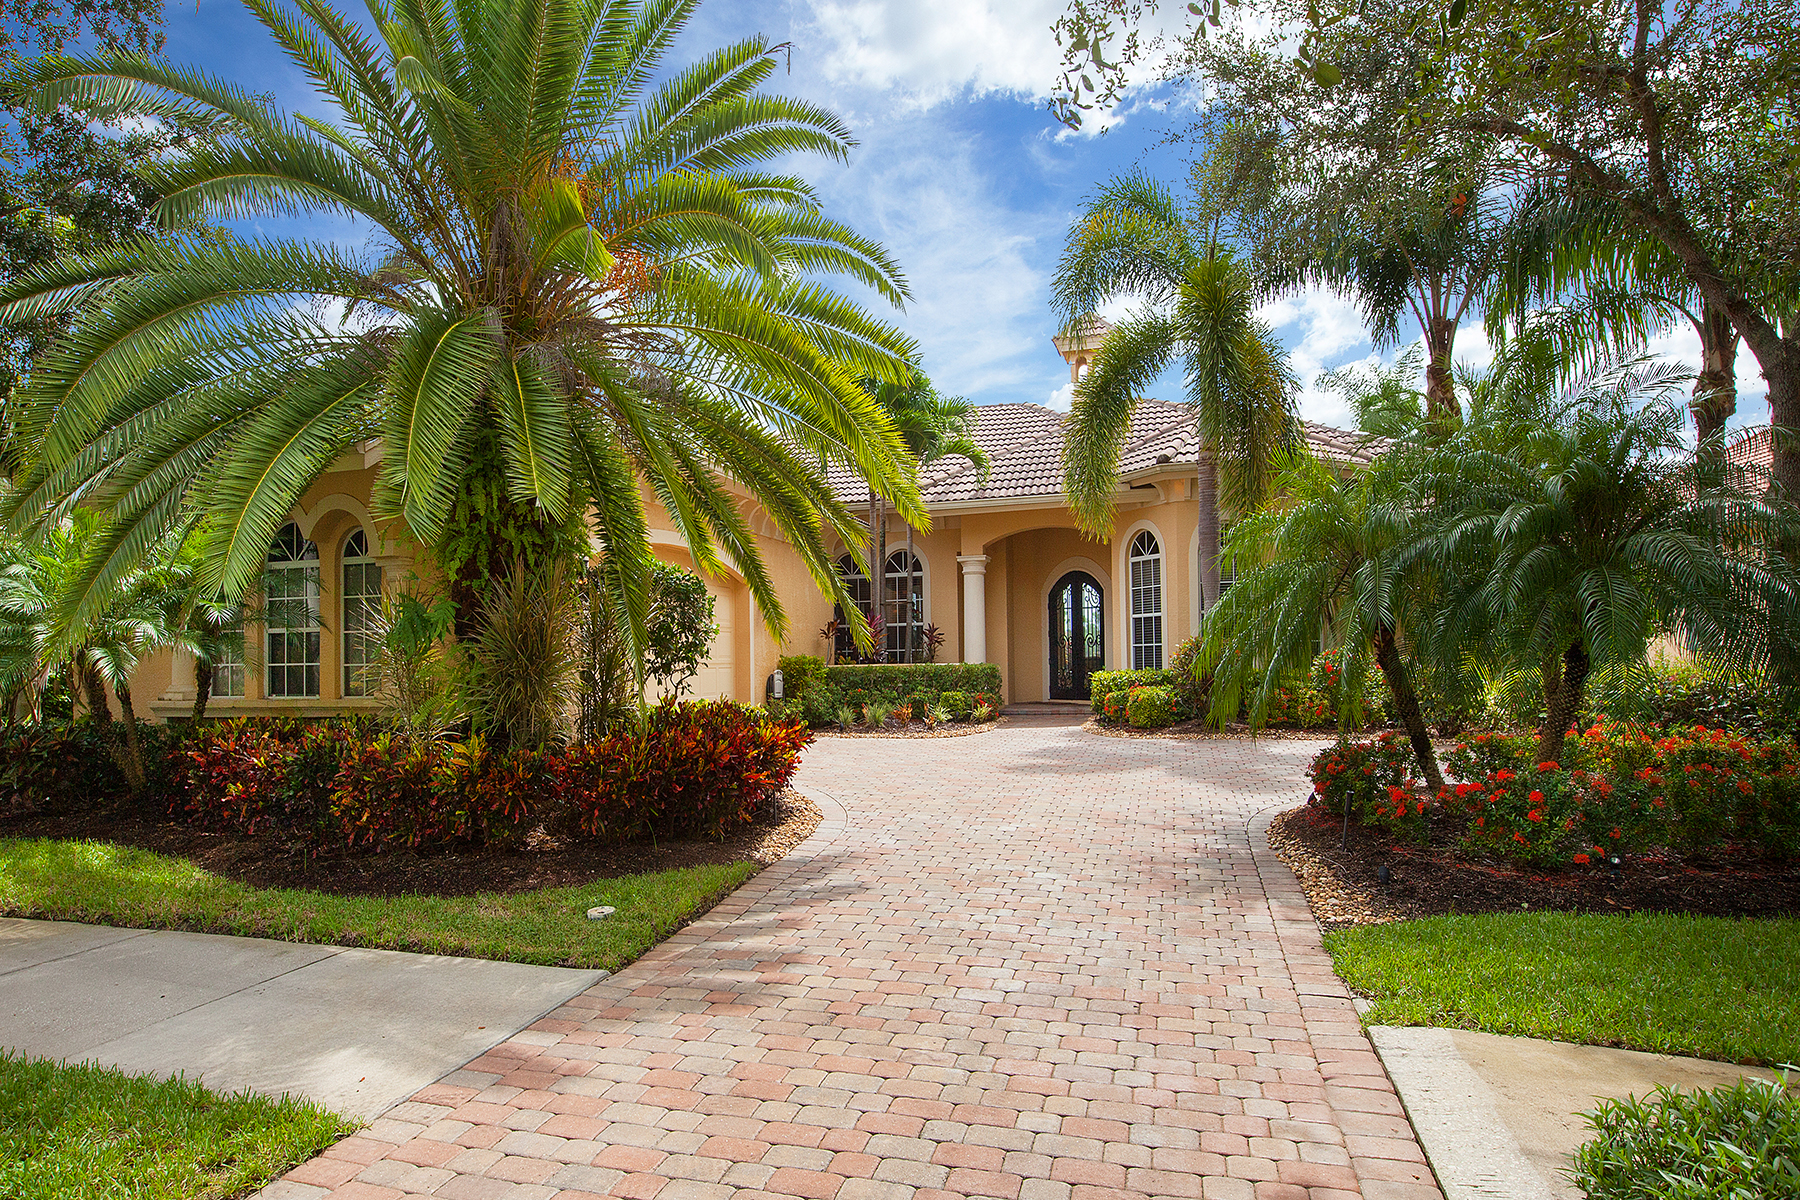 Single Family Home for Sale at FIDDLER'S CREEK - MULBERRY ROW 7646 Mulberry Ln Naples, Florida, 34114 United States